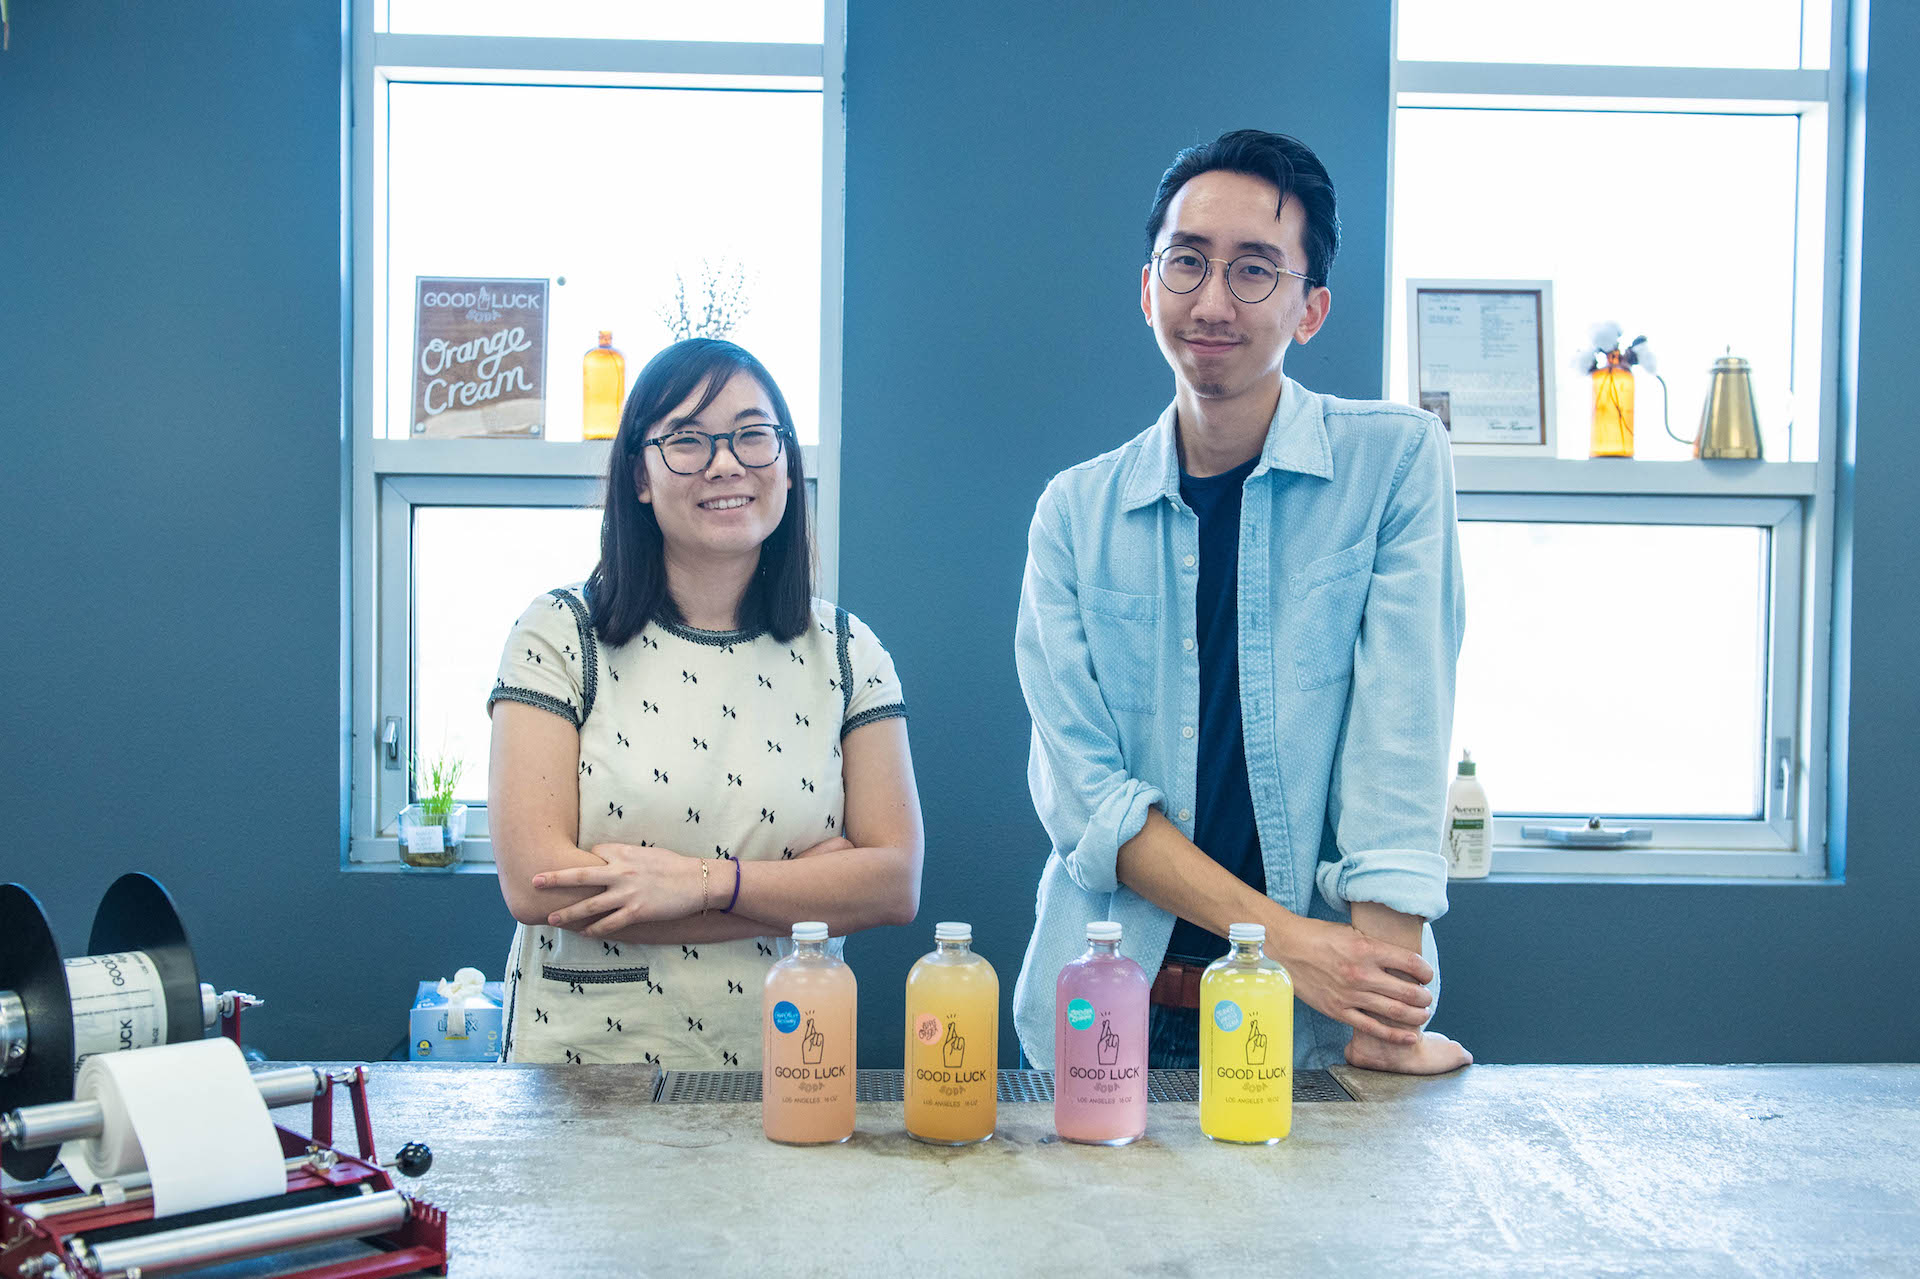 Annie Seo (left) and Chris Hahn (right) of Good Luck Soda.